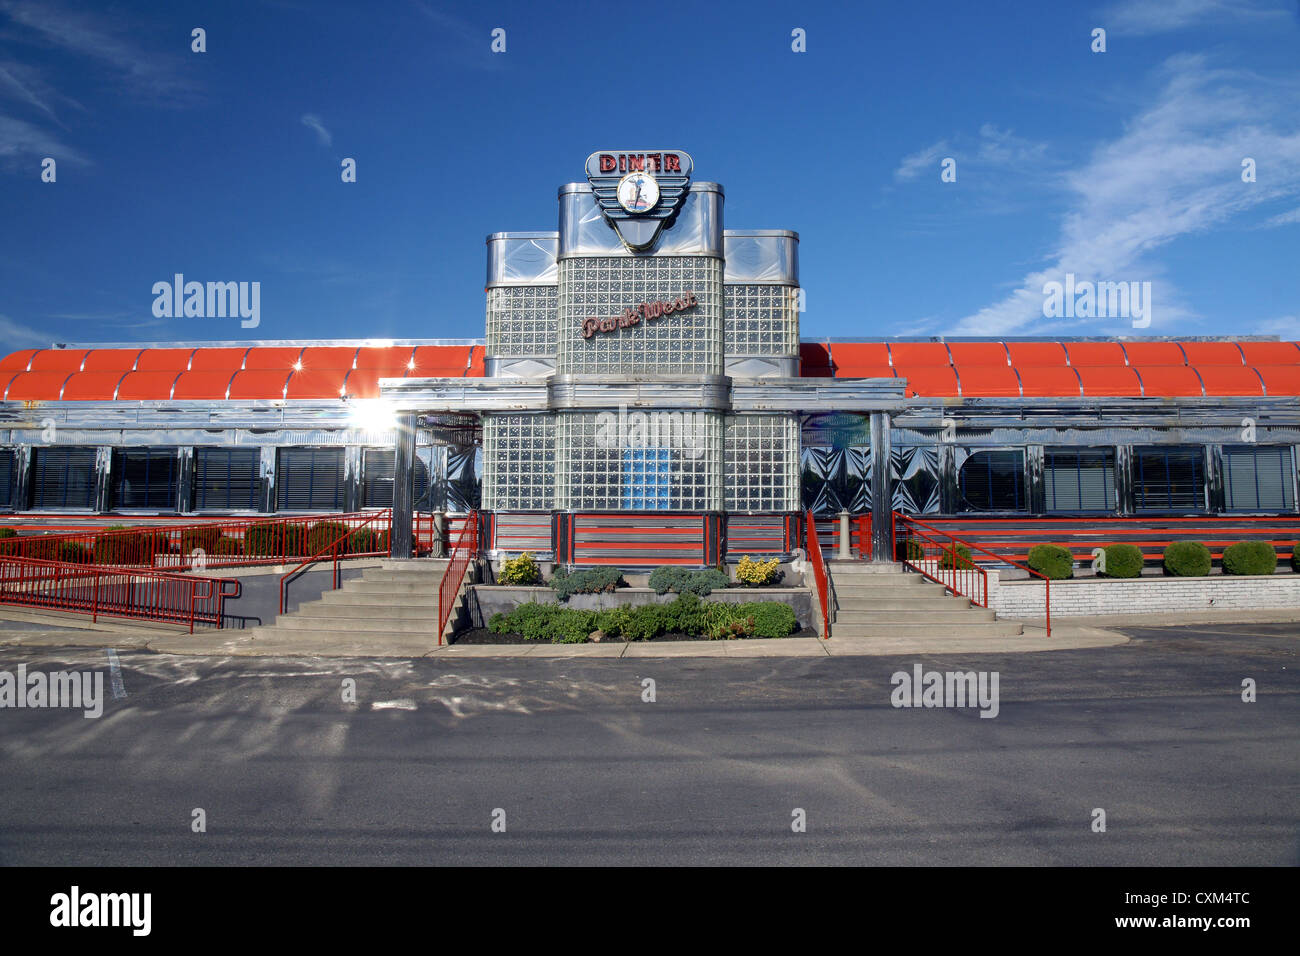 The iconic art deco style Park West diner a well known traditional ...